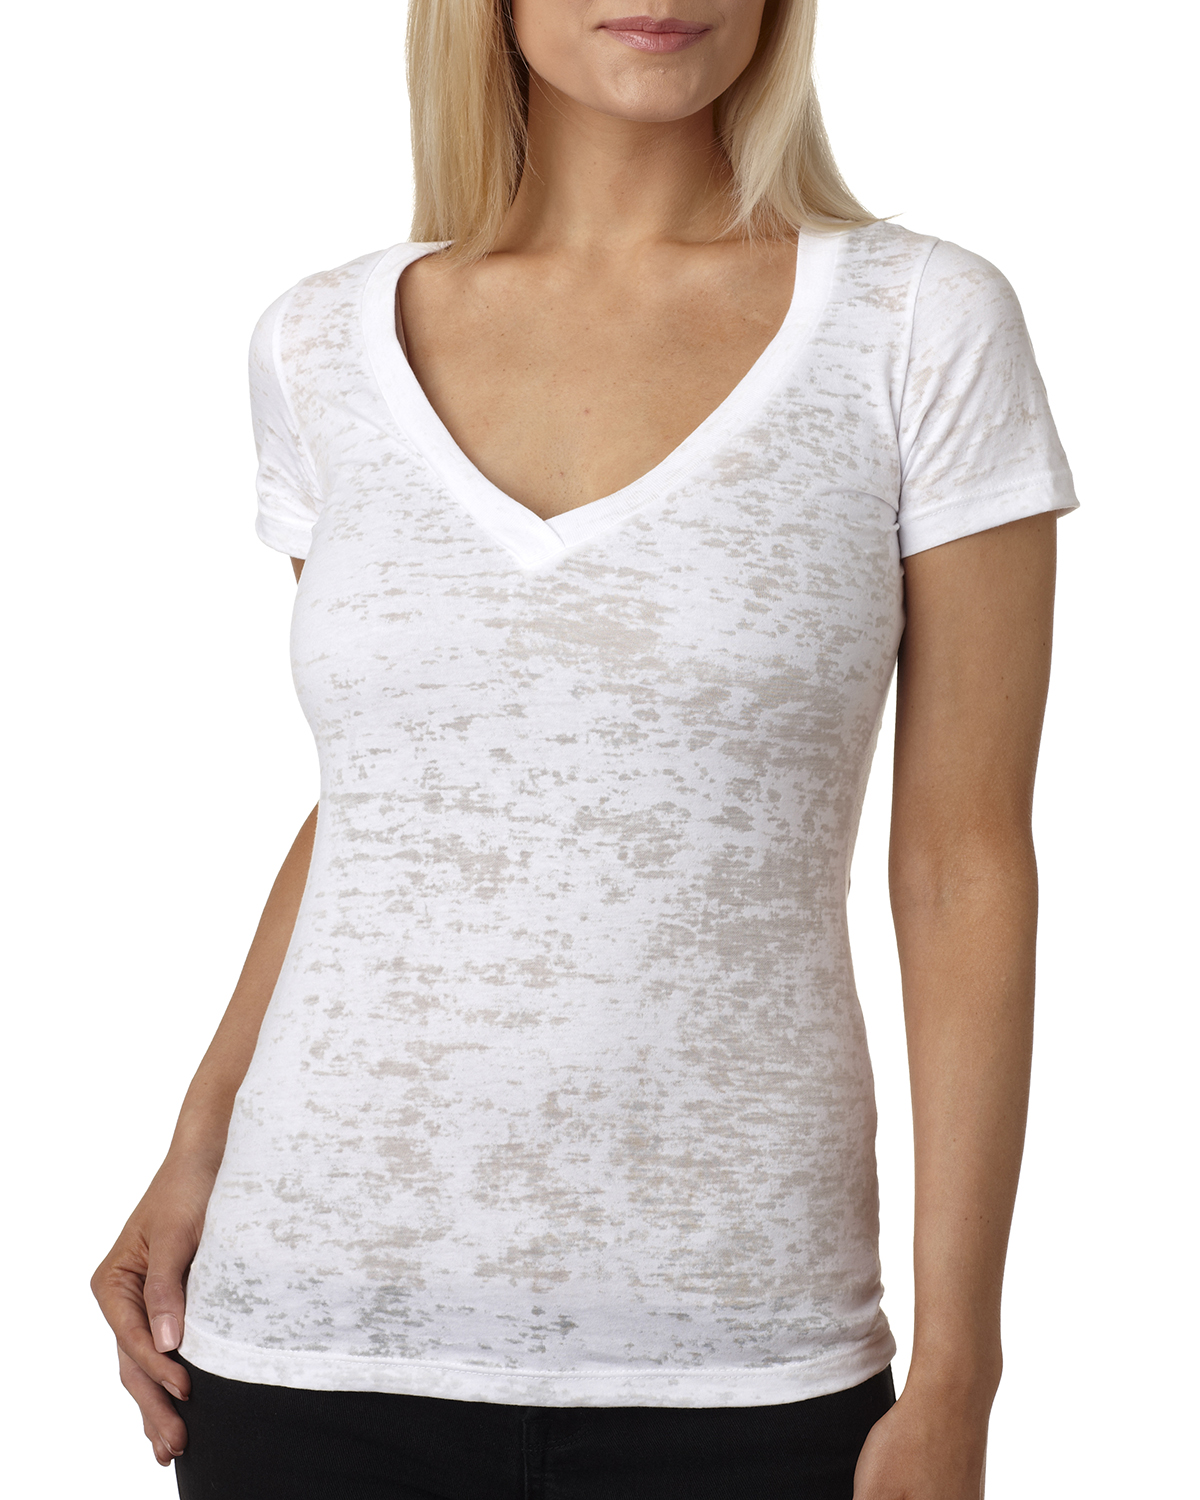 Next level 6540 ladies 39 burnout deep v tee shirtmax for High end white t shirts